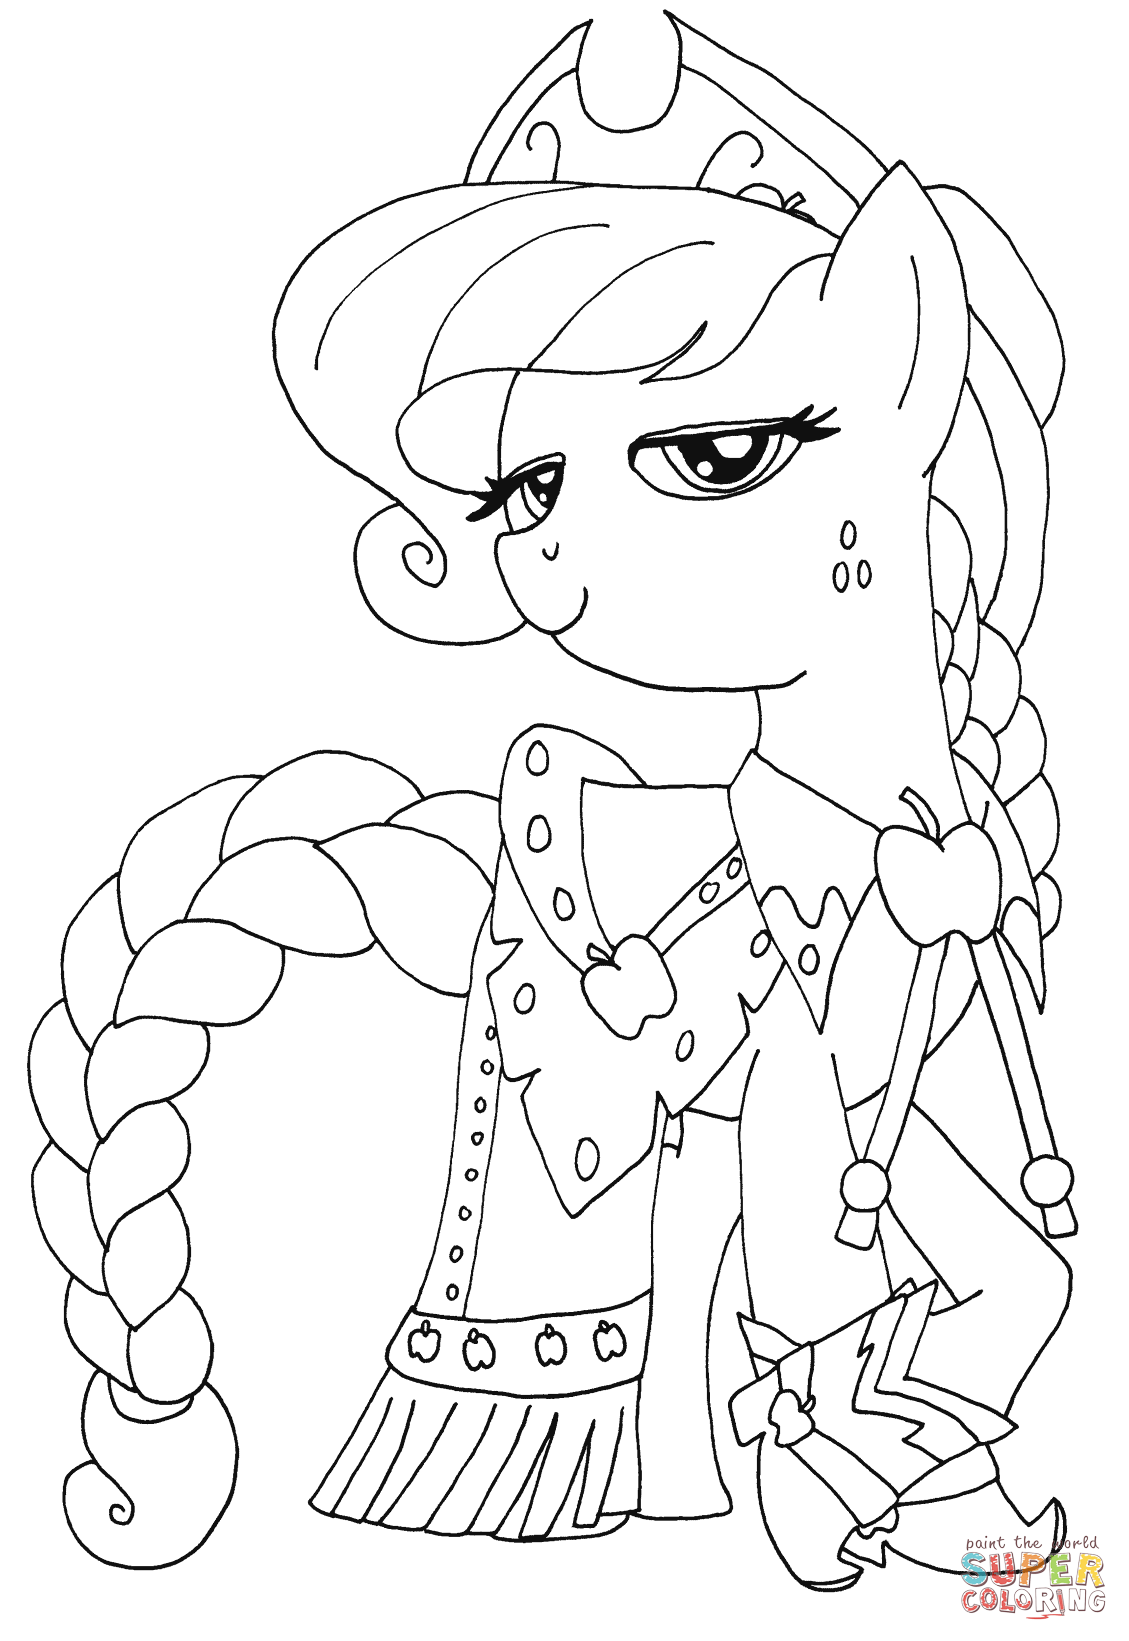 Princess Applejack From My Little Pony Coloring Page